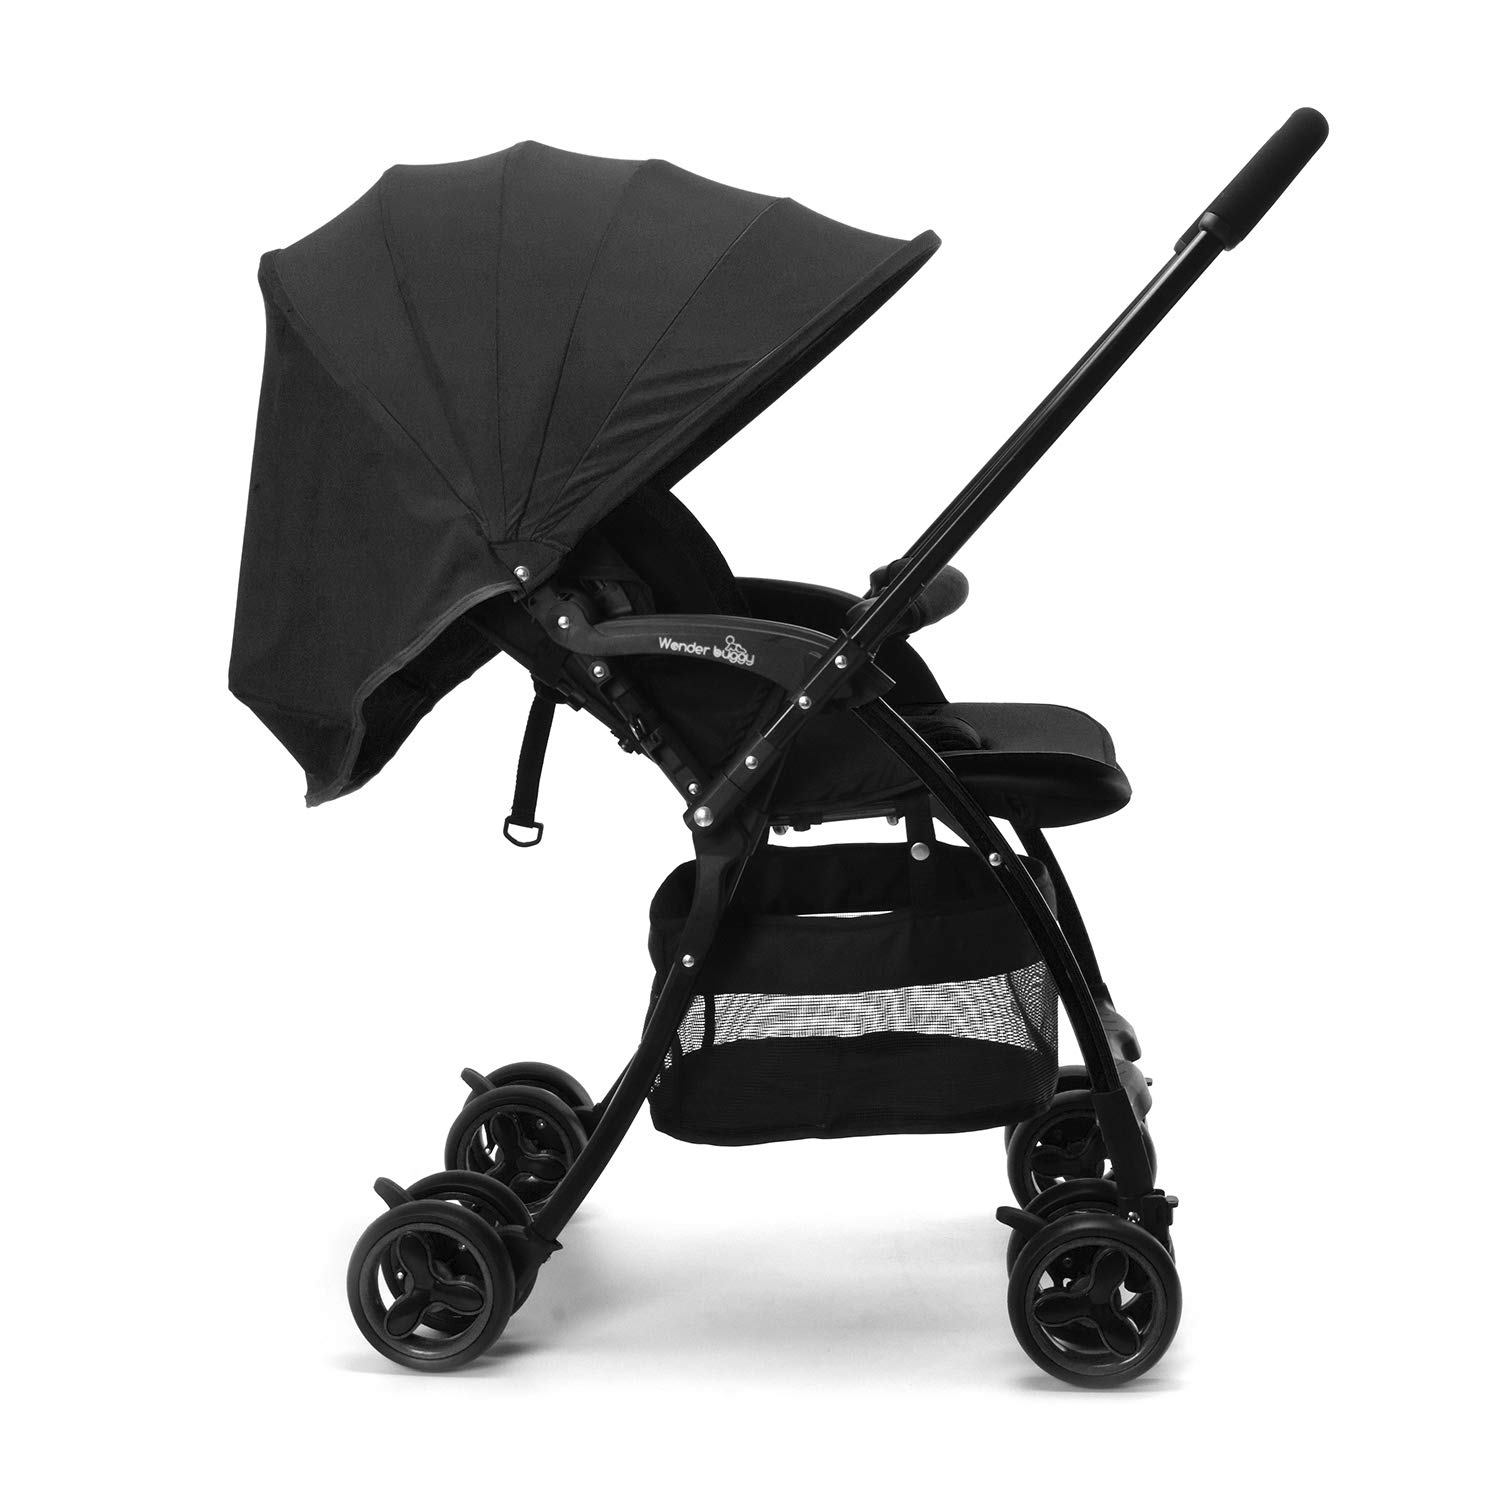 Wonder buggy Lightweight Baby Stroller with Reversible Handle, Easy Foldable and Collapsible (Black)